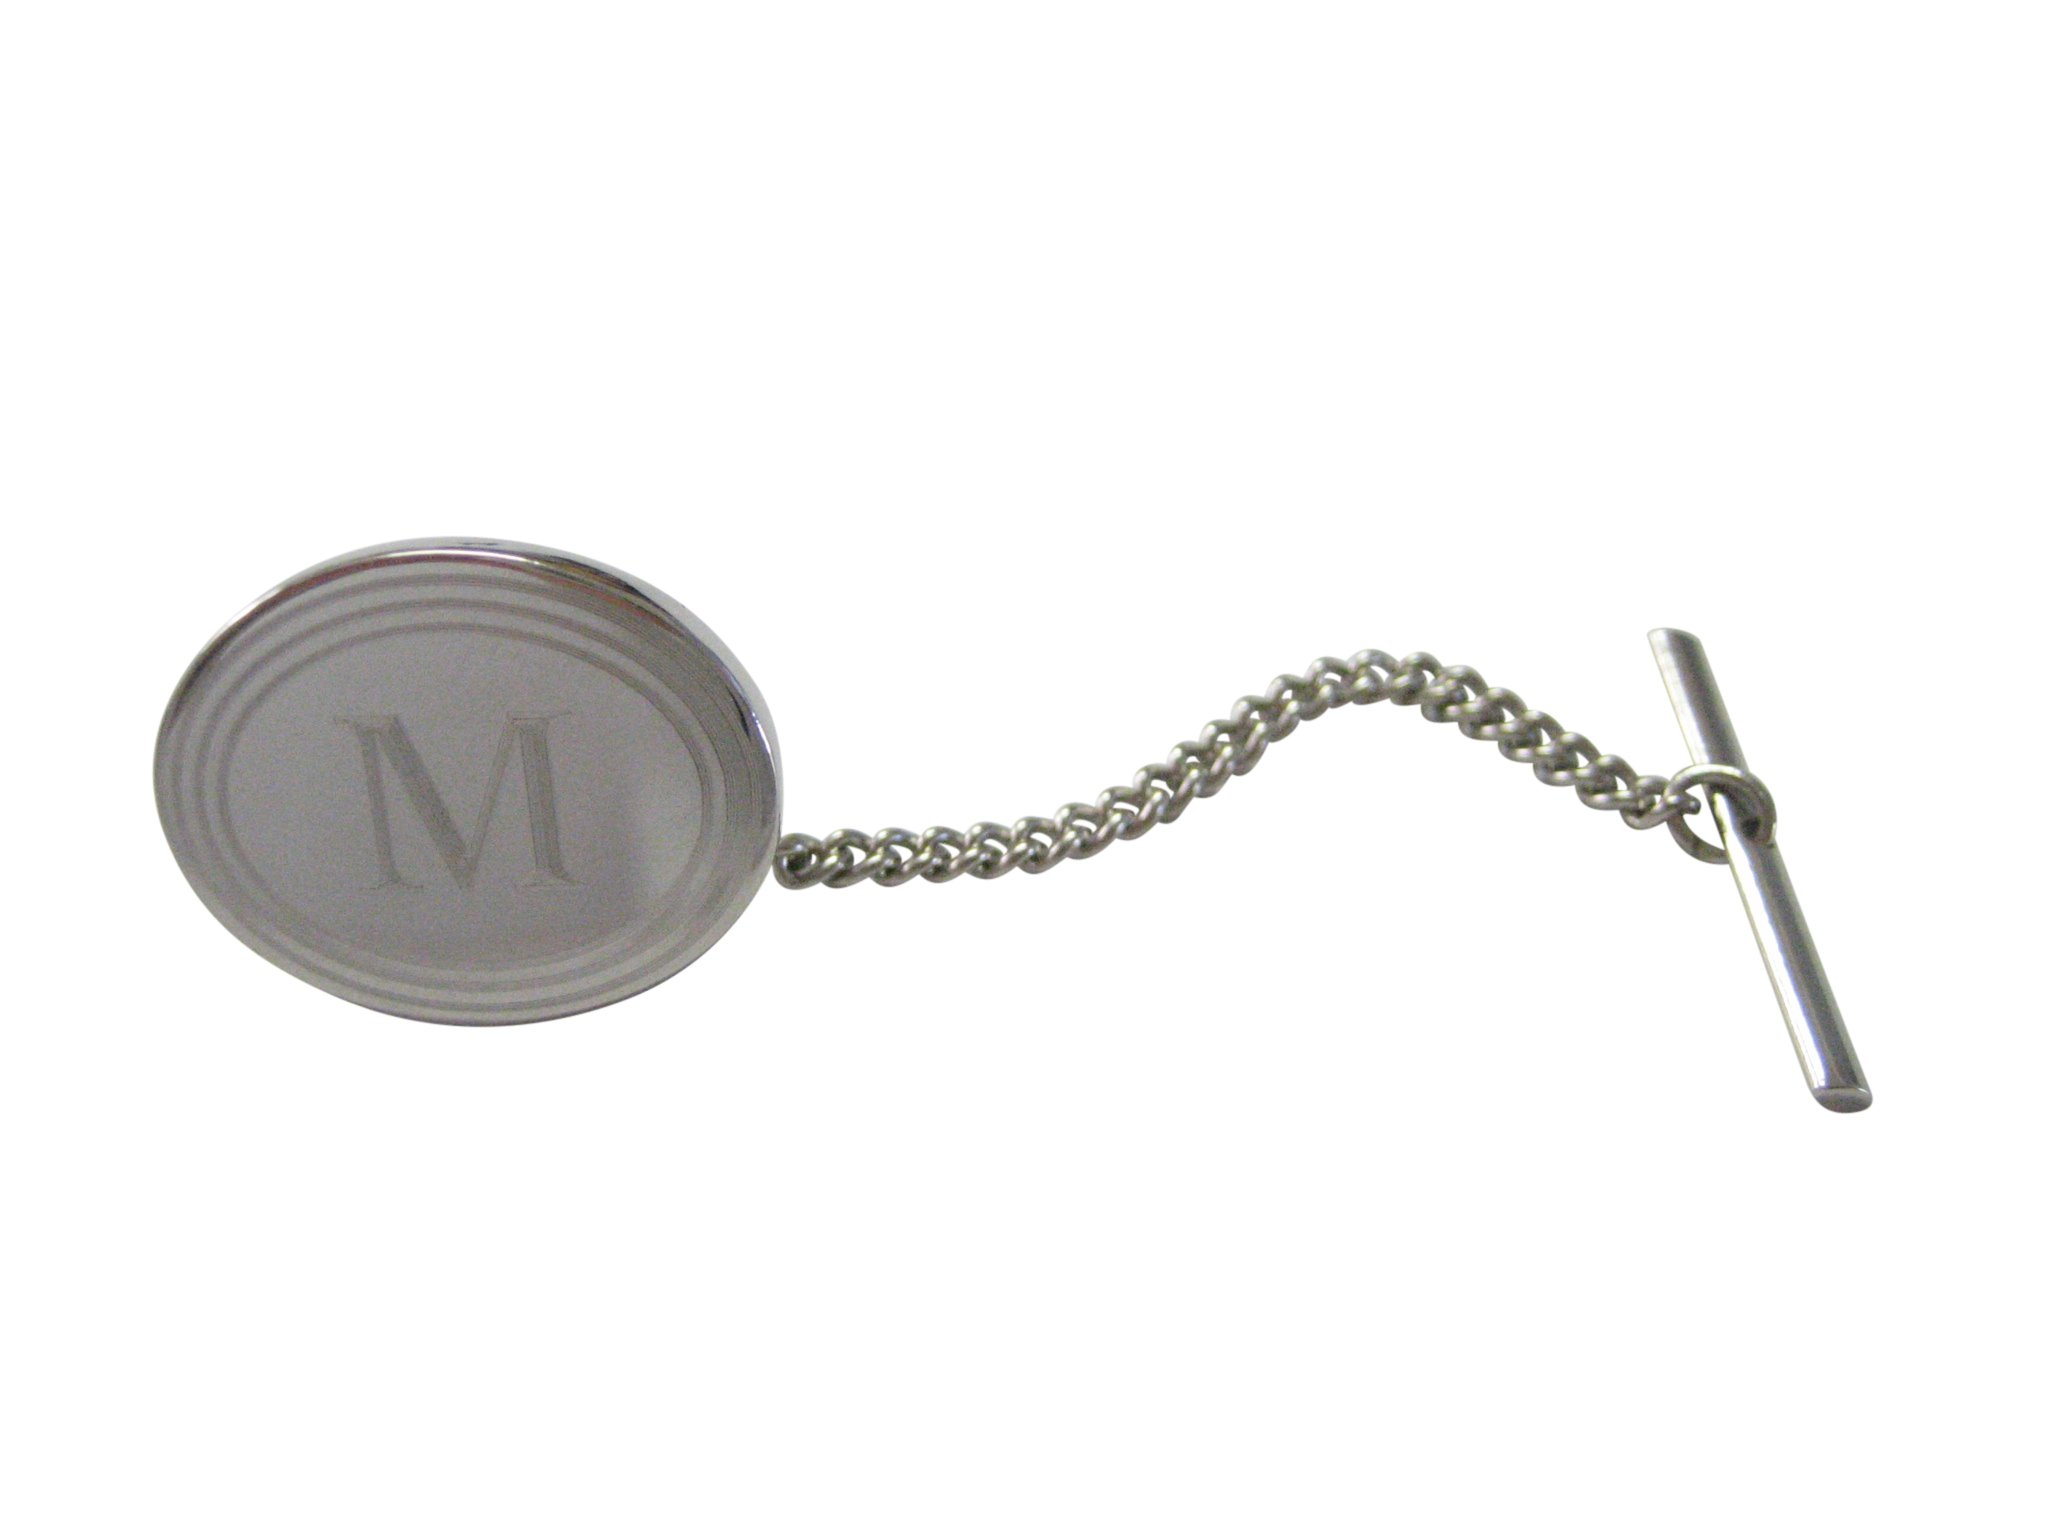 Silver Toned Etched Oval Letter M Monogram Tie Tack